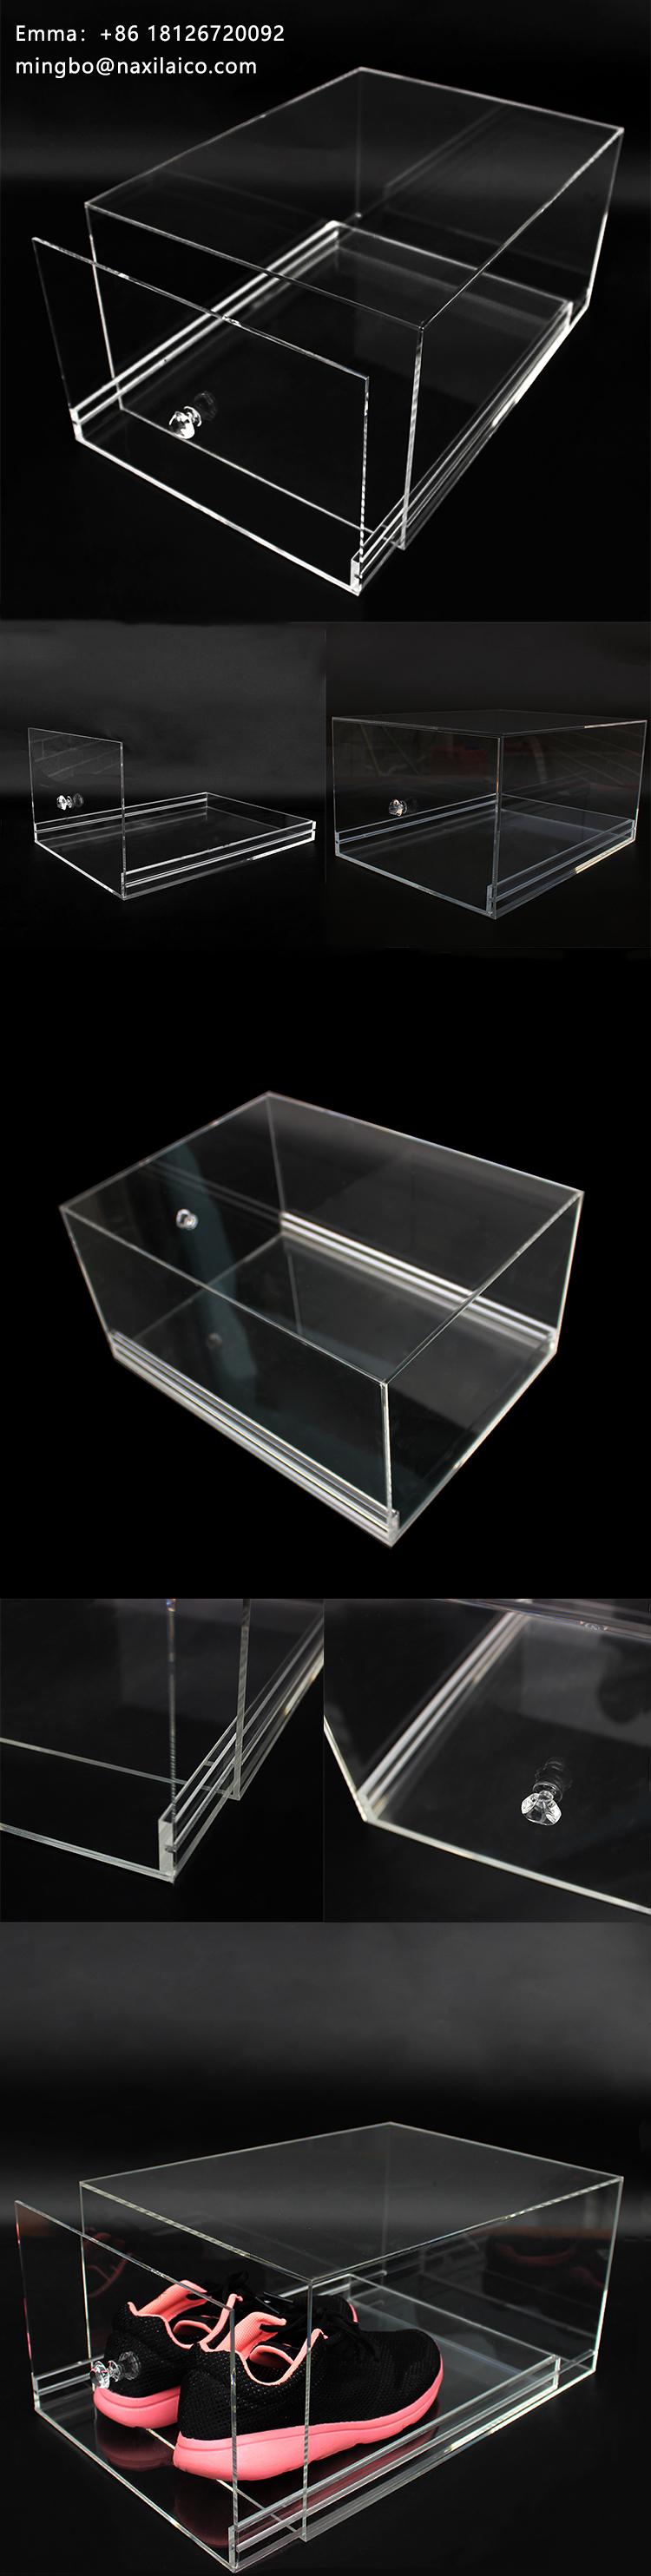 Transparent Glass Sneaker Box Acrylic Clear Case With Logo Transparent Box for Acrylic Shoe Display Case.jpg